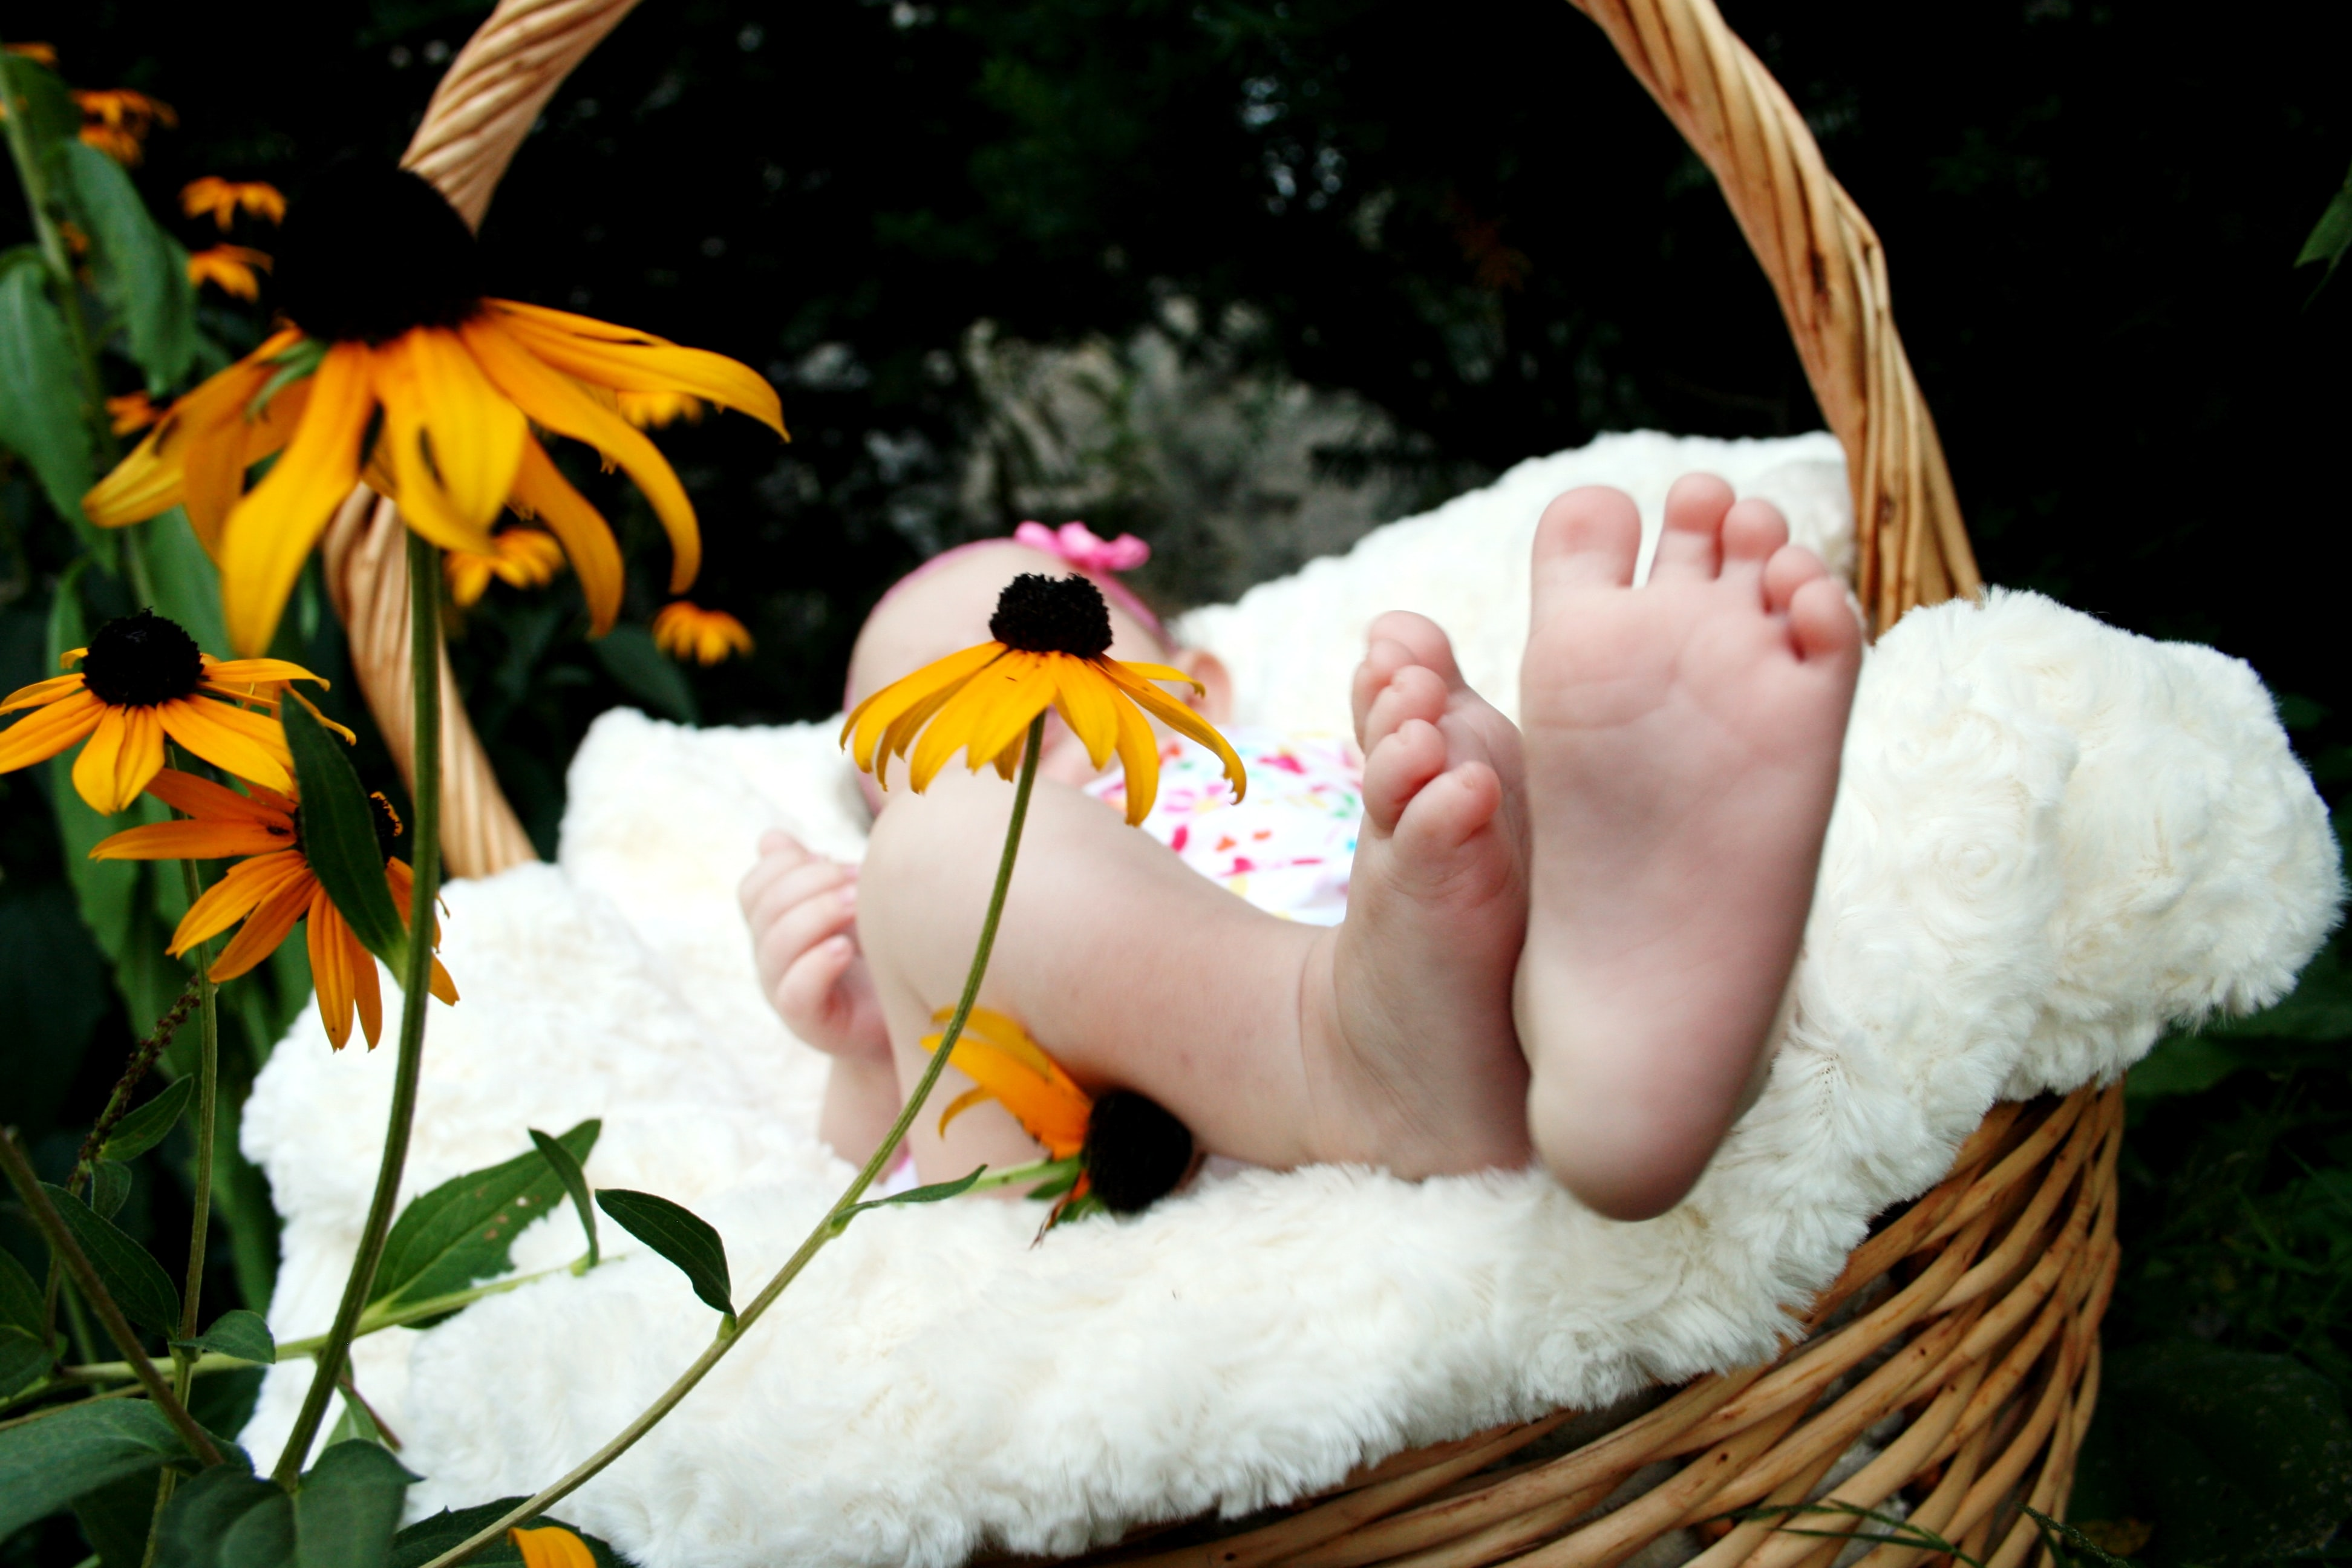 A barefoot baby on a soft blanket in a wicker basket